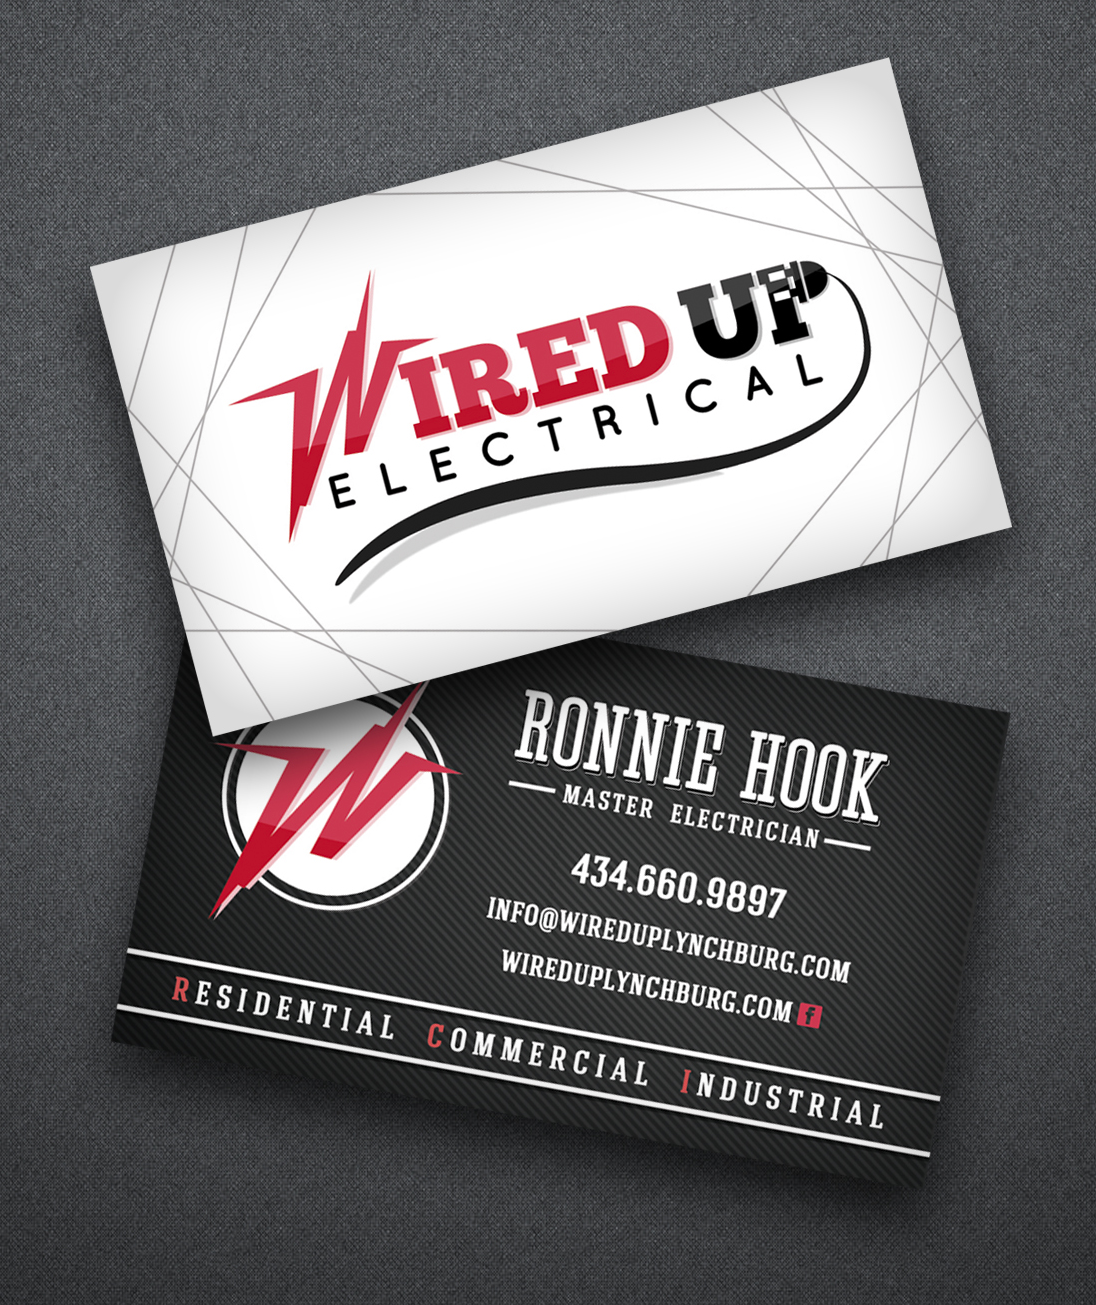 Designed business cards for an electrician design pinterest designed business cards for an electrician magicingreecefo Images